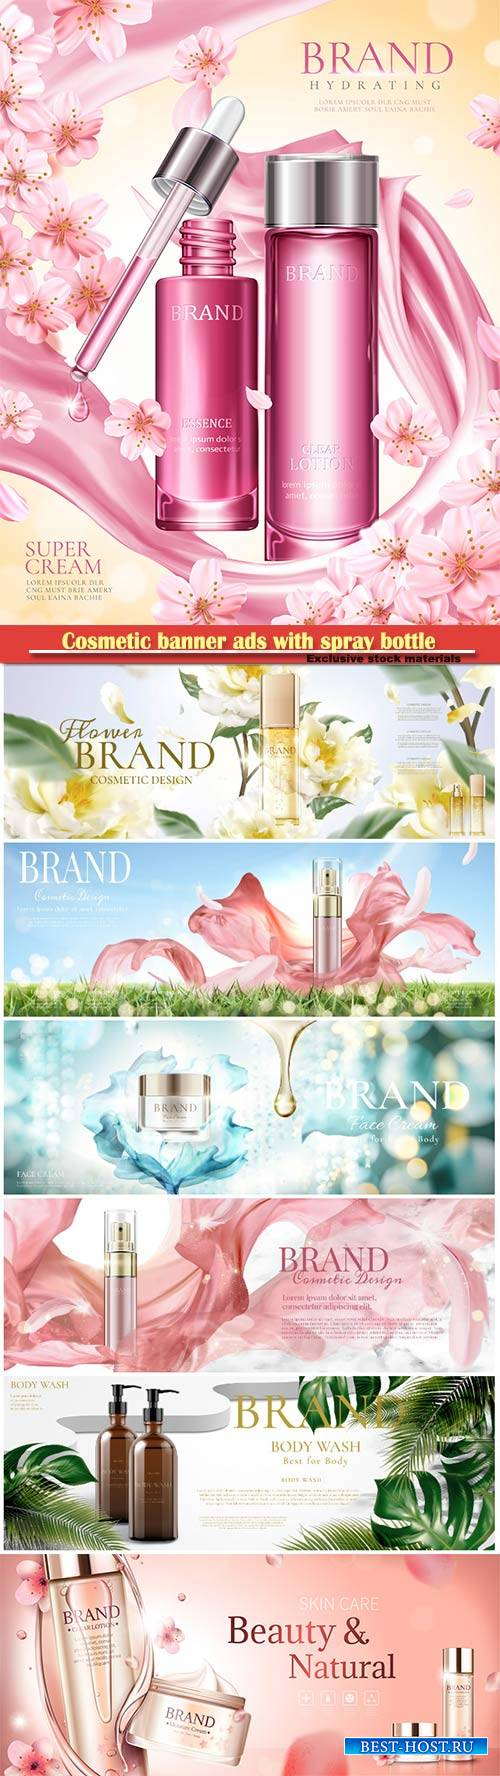 Cosmetic banner ads with spray bottle in 3d illustration vector illustratio ...